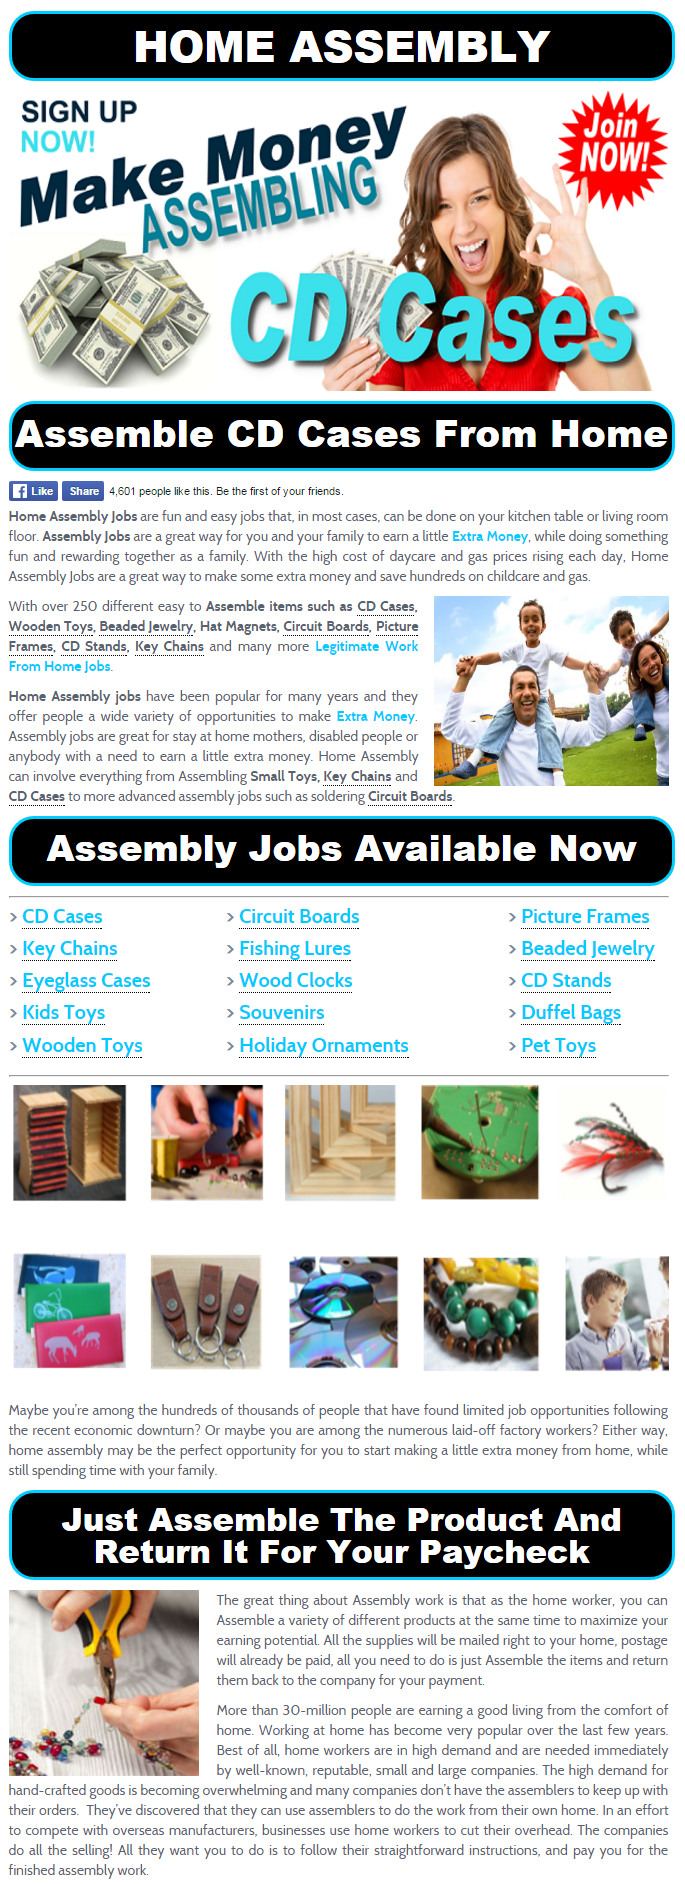 Assemble From Home Jobs Assemble Cd Cases At Home Assembleandearn Assembly Jobs At Home About